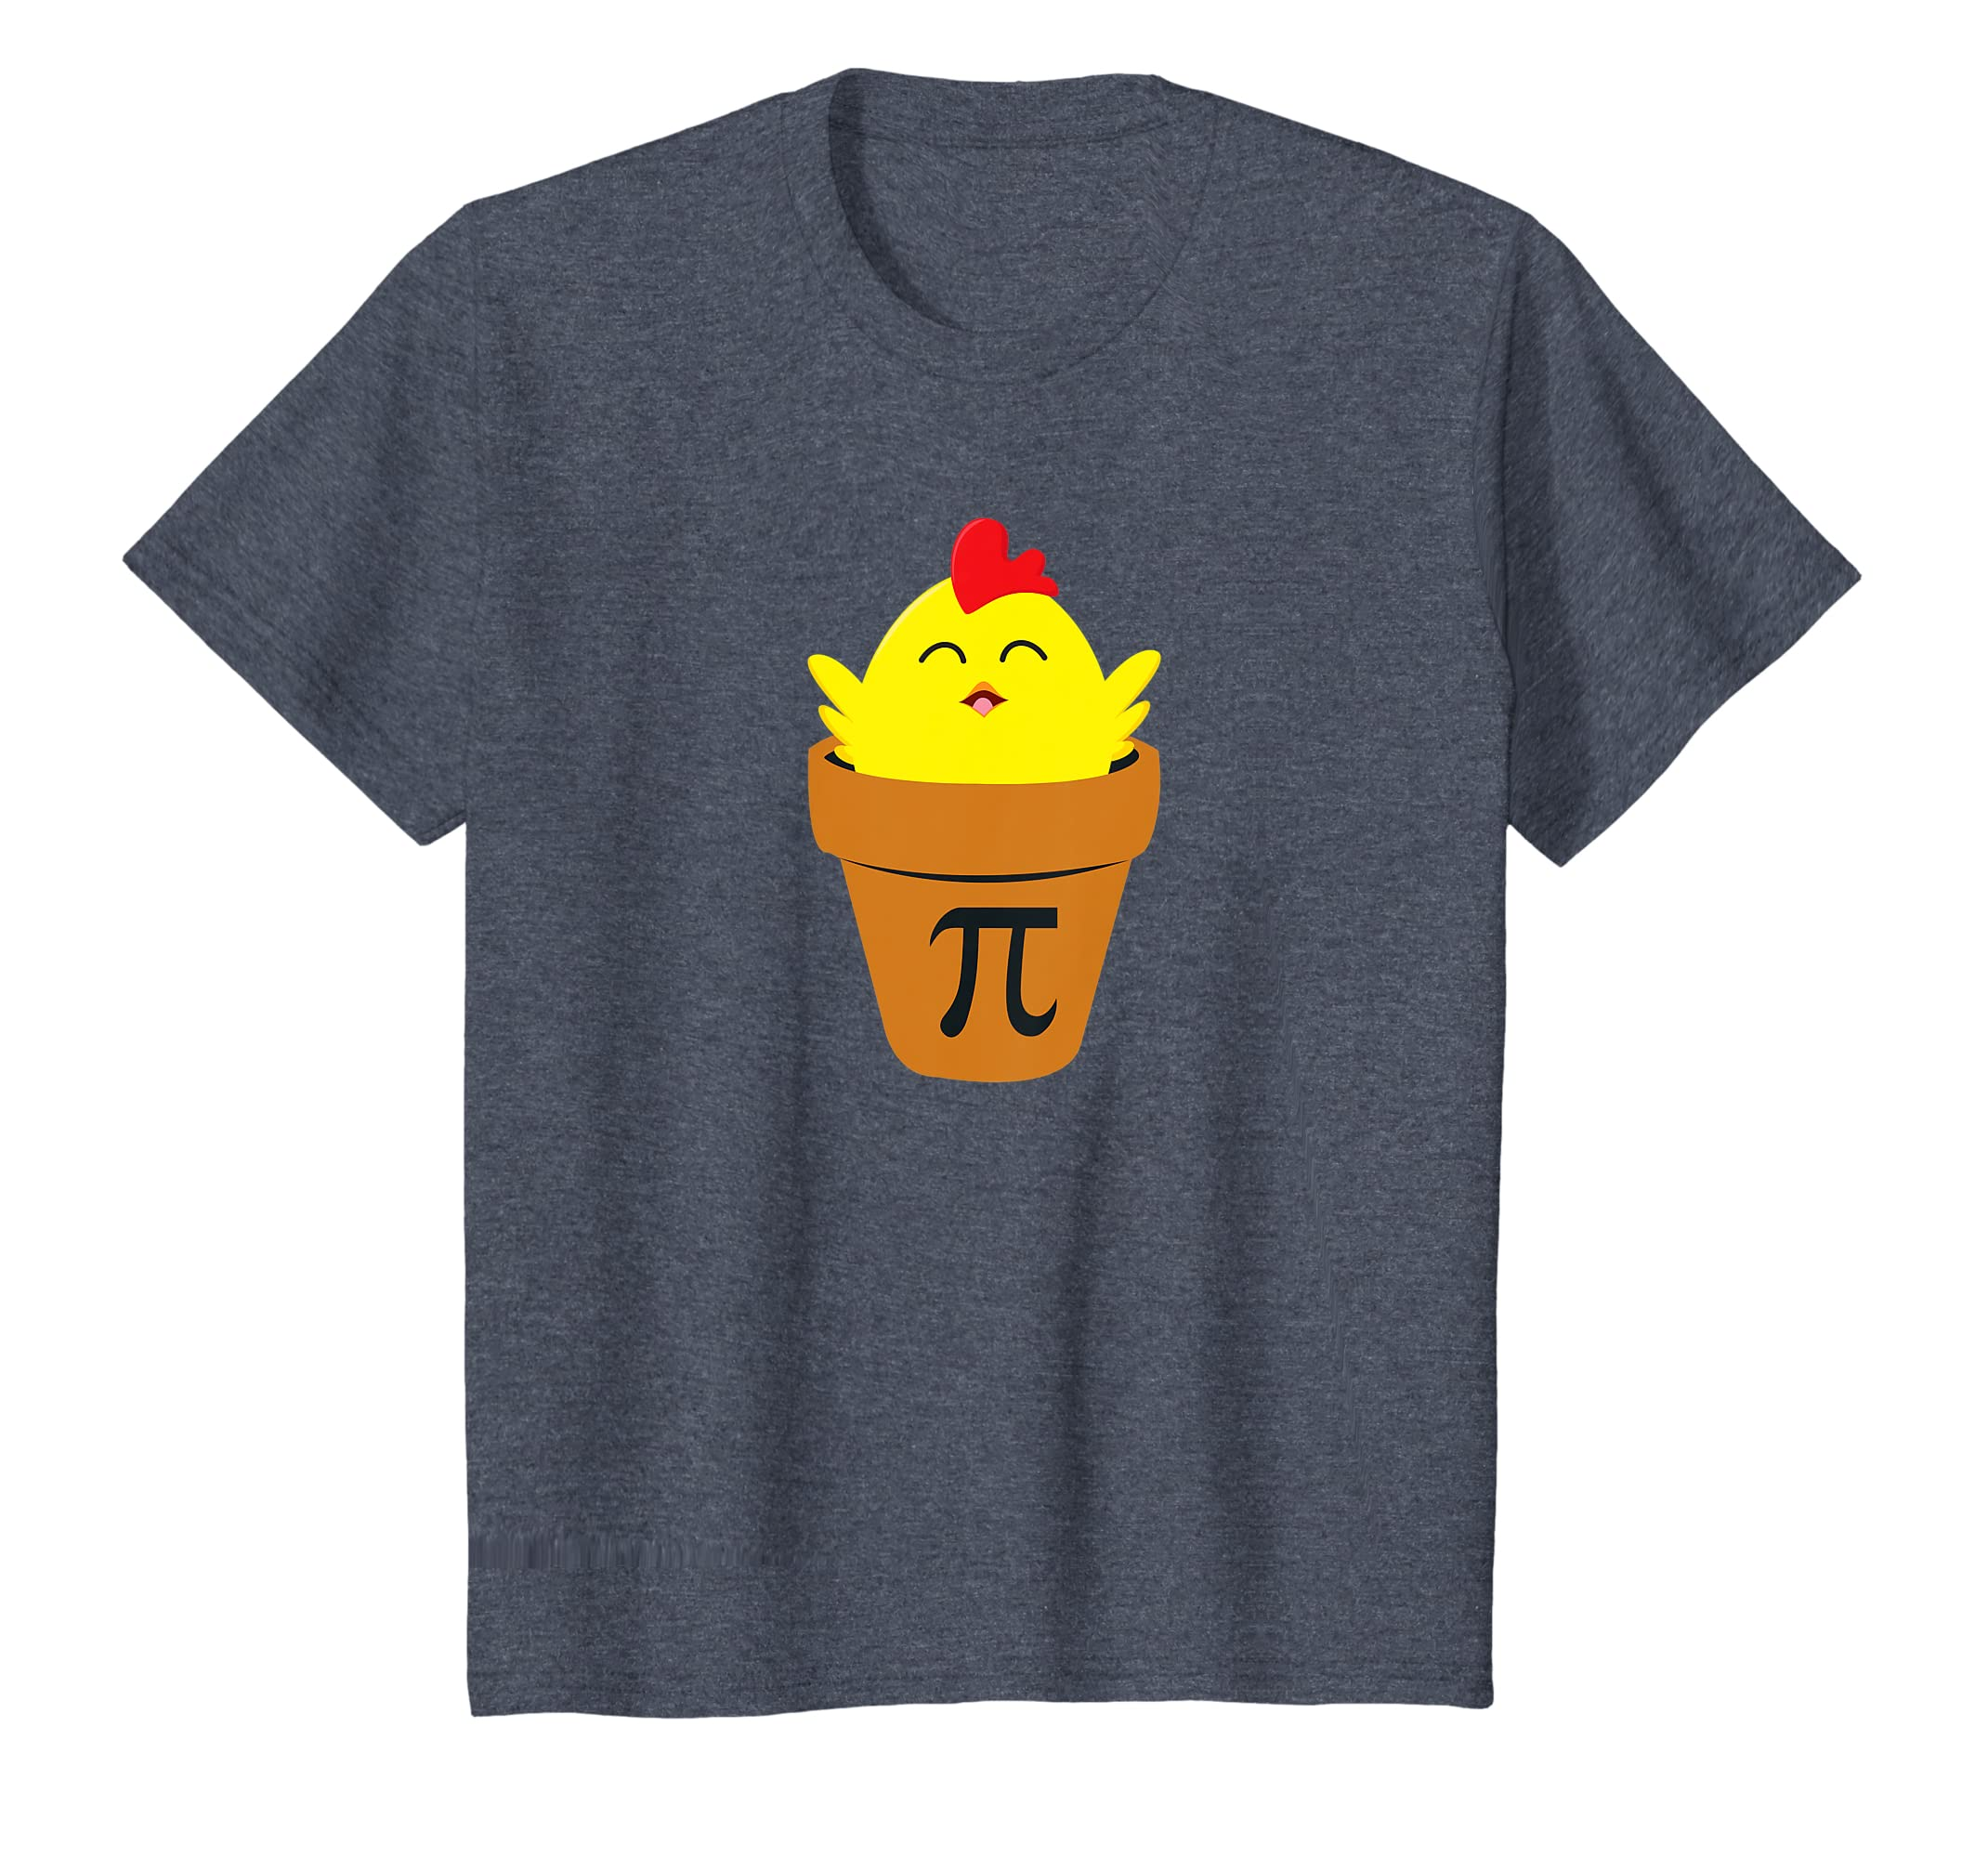 82abaaca Amazon.com: Pi Day Math T Shirt : Funny Chicken Pot Pie T Shirt For All:  Clothing